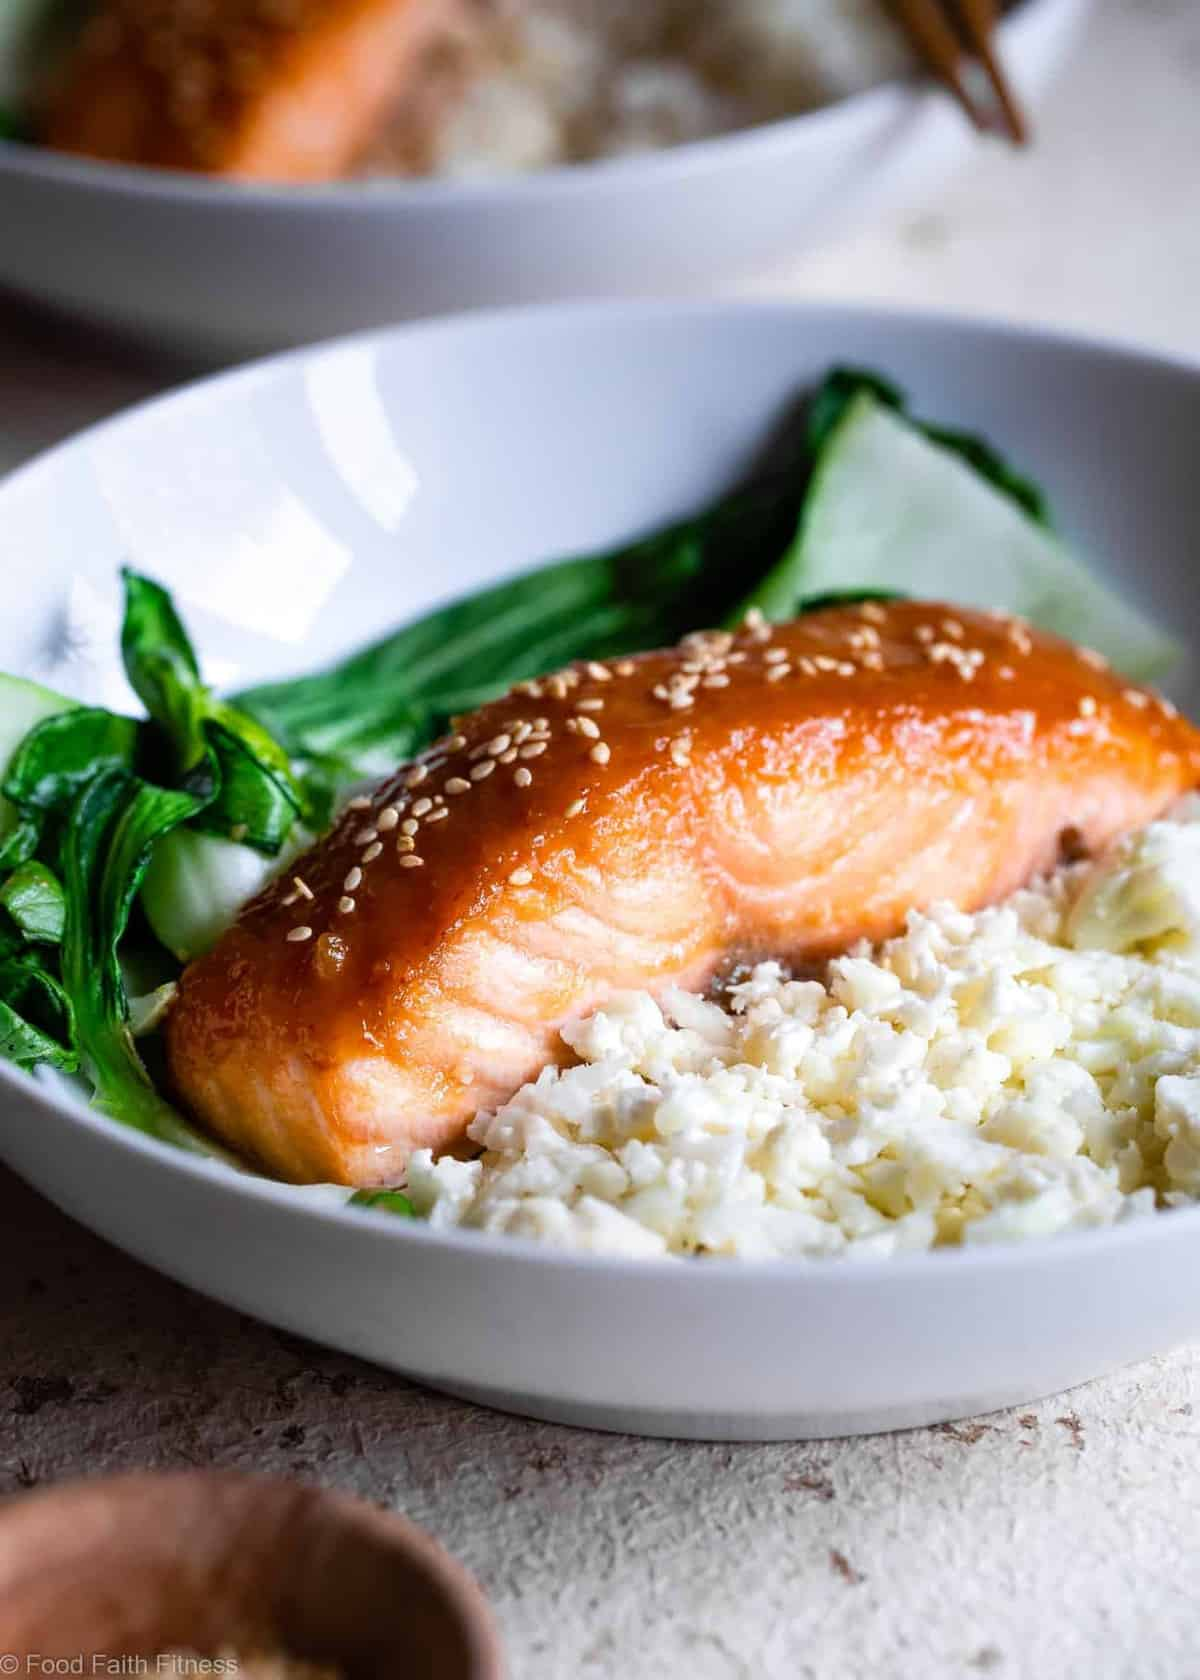 Honey Sriracha Miso Glazed Salmon - An easy, 15 minute weeknight dinnerthat is big on spicy-sweet asian flavor! A gluten free meal you'll make over and over! Only one Weight Watchers SmartPoint too! | #Foodfaithfitness |